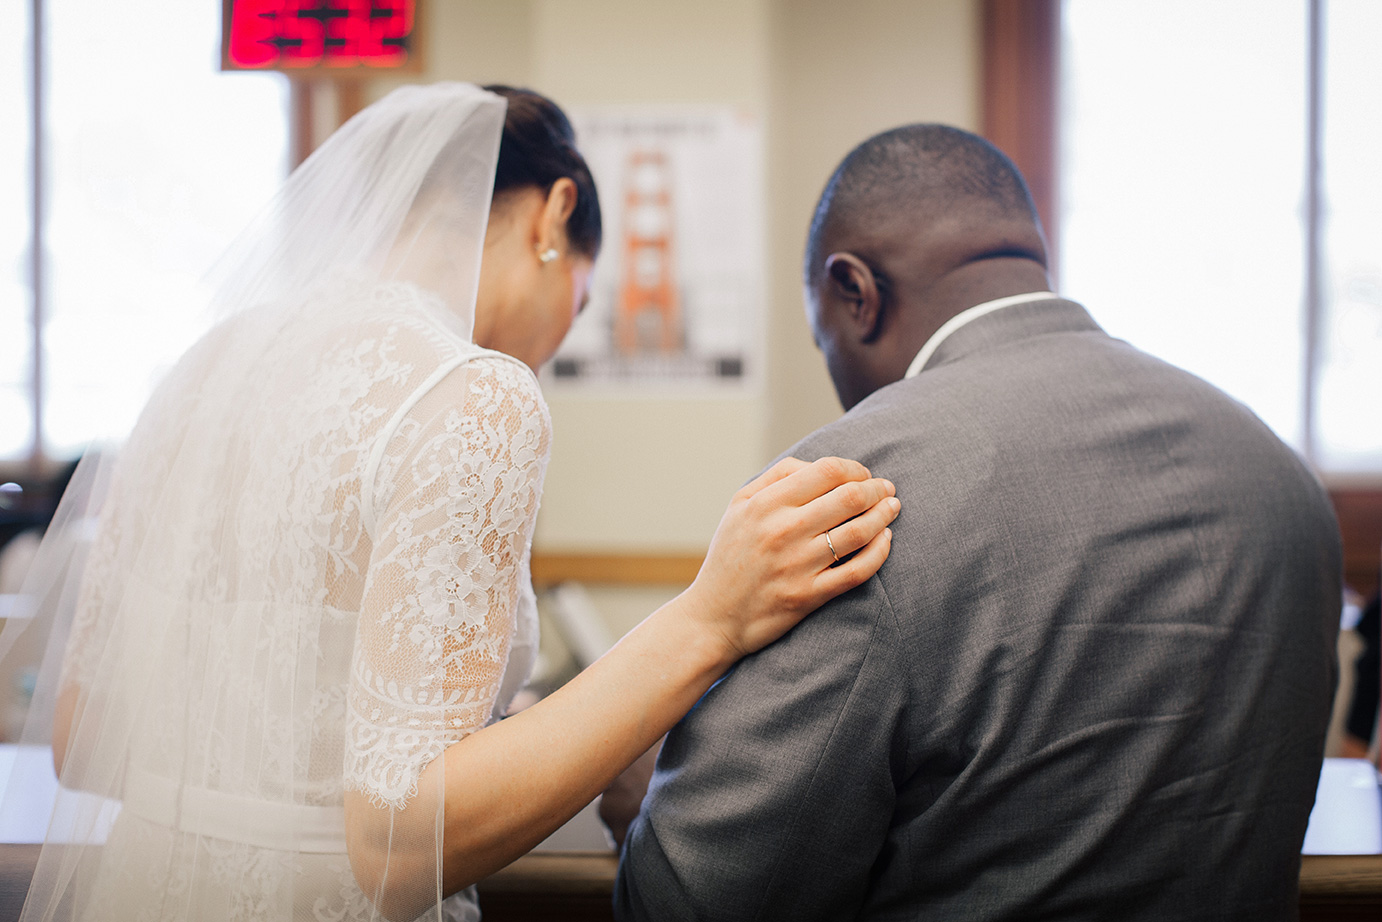 A bride and groom fill out paper work inside the County Clerk's Office at San Francisco's City Hall.